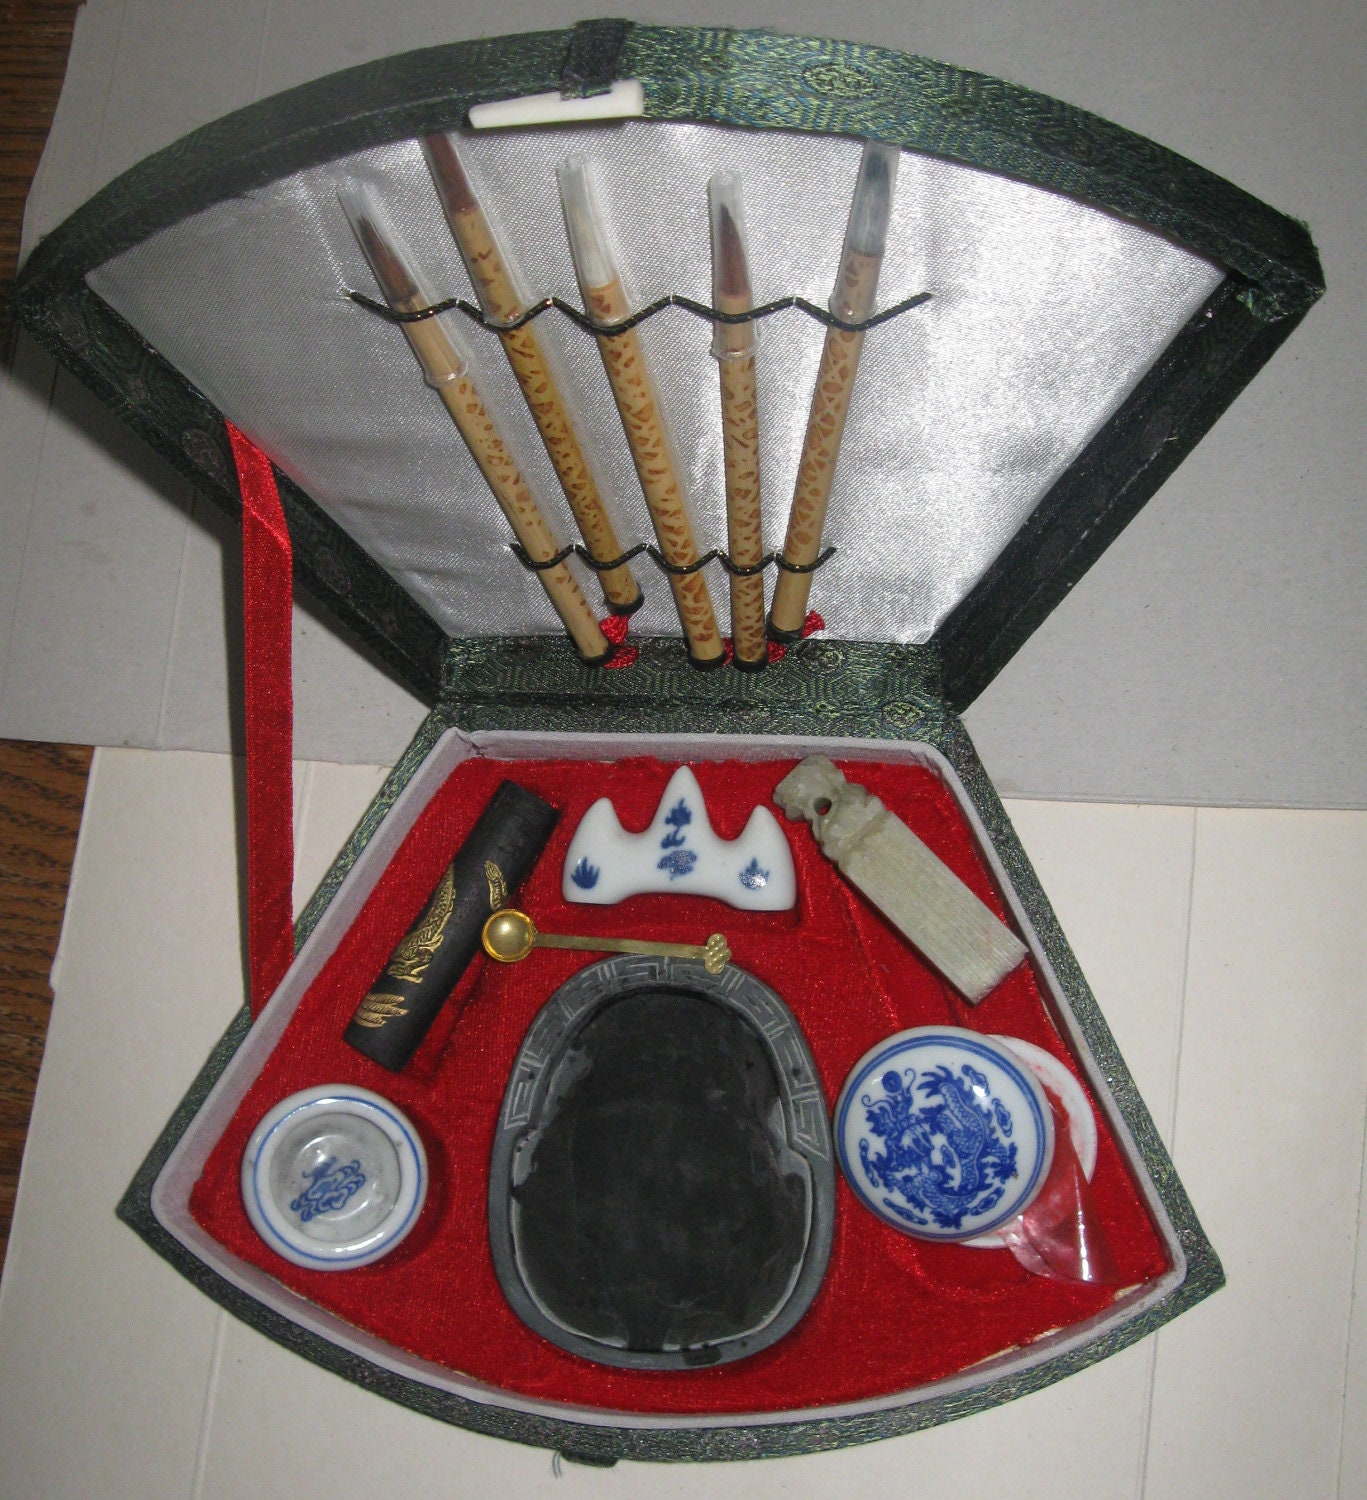 Chinese Calligraphy Set With 5 Brushes And Grinding Tools